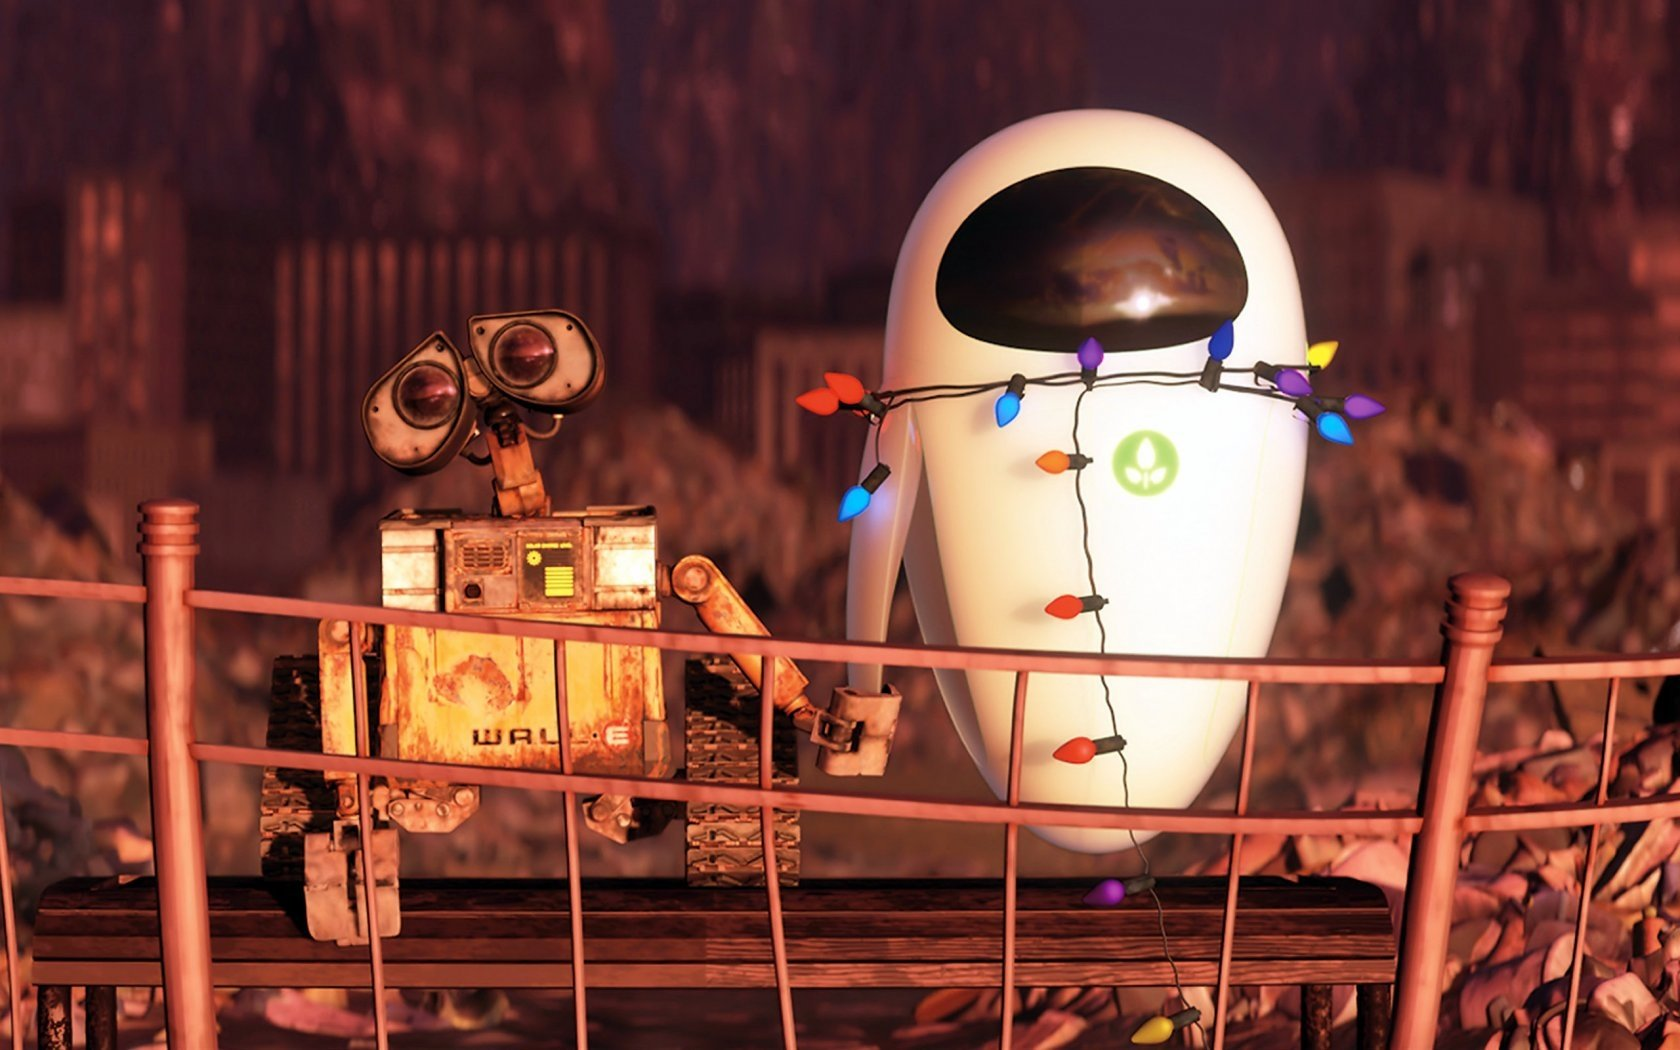 72 Wall    E HD Wallpapers   Background Images   Wallpaper Abyss HD Wallpaper   Background Image ID 67633